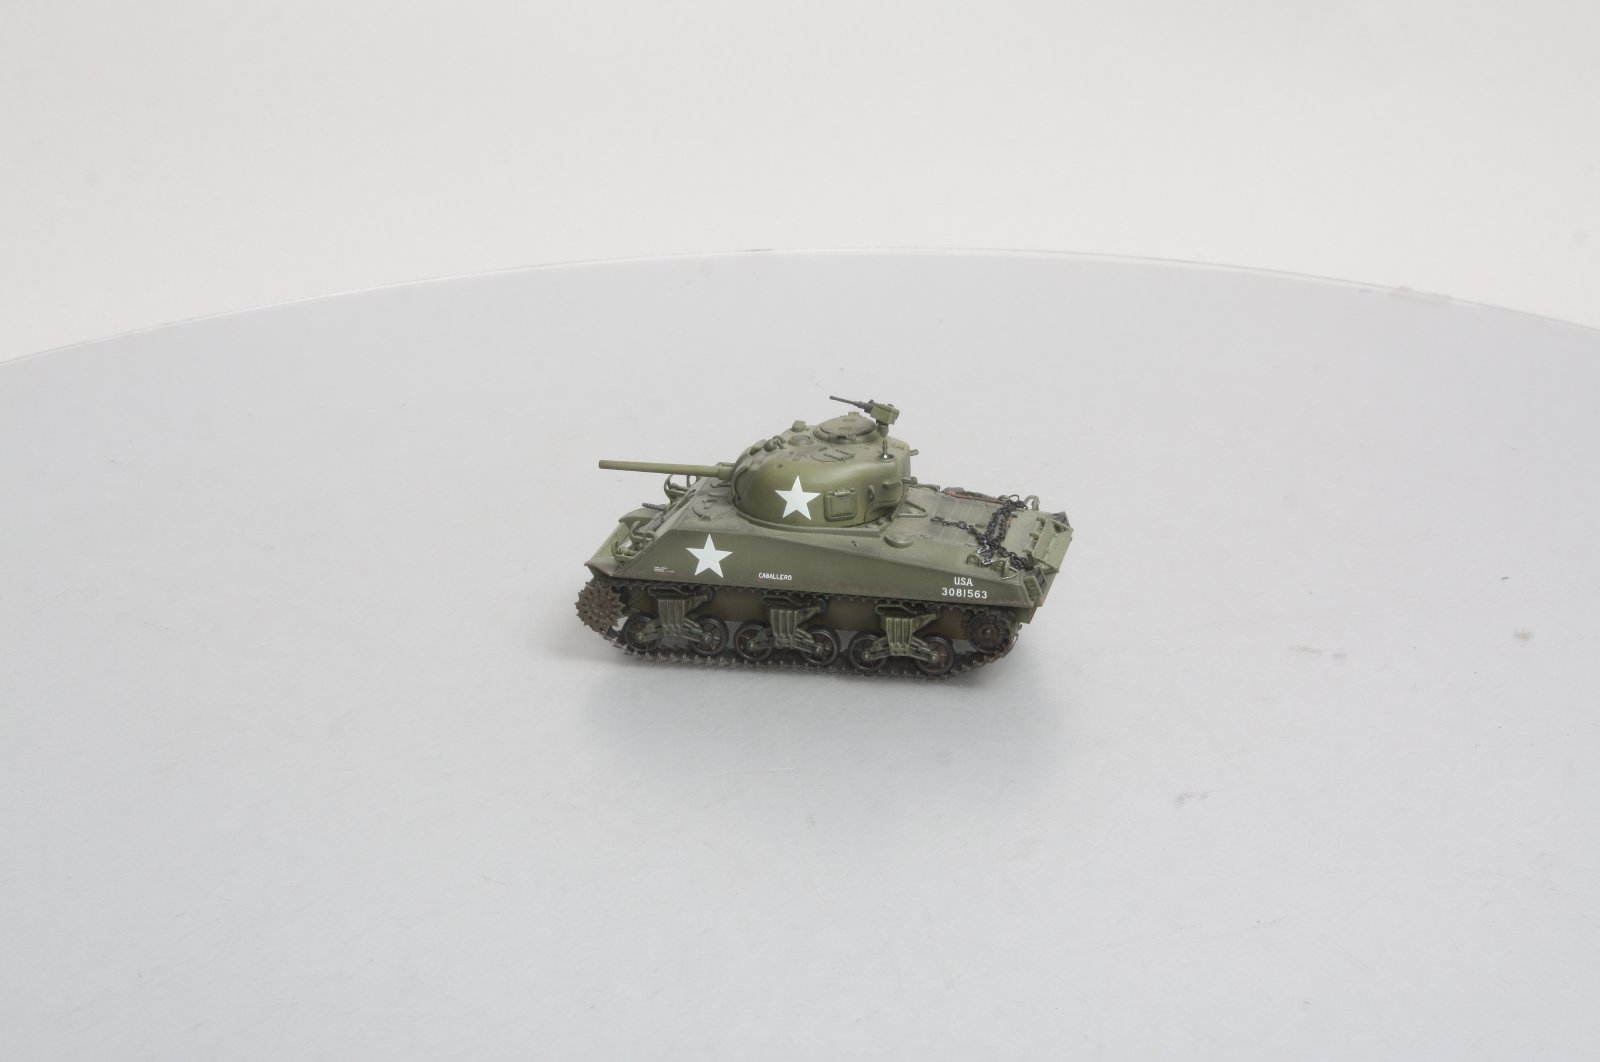 Buy Hobby Master HG1001 US Army Sherman Tank M4A3 6th Armored